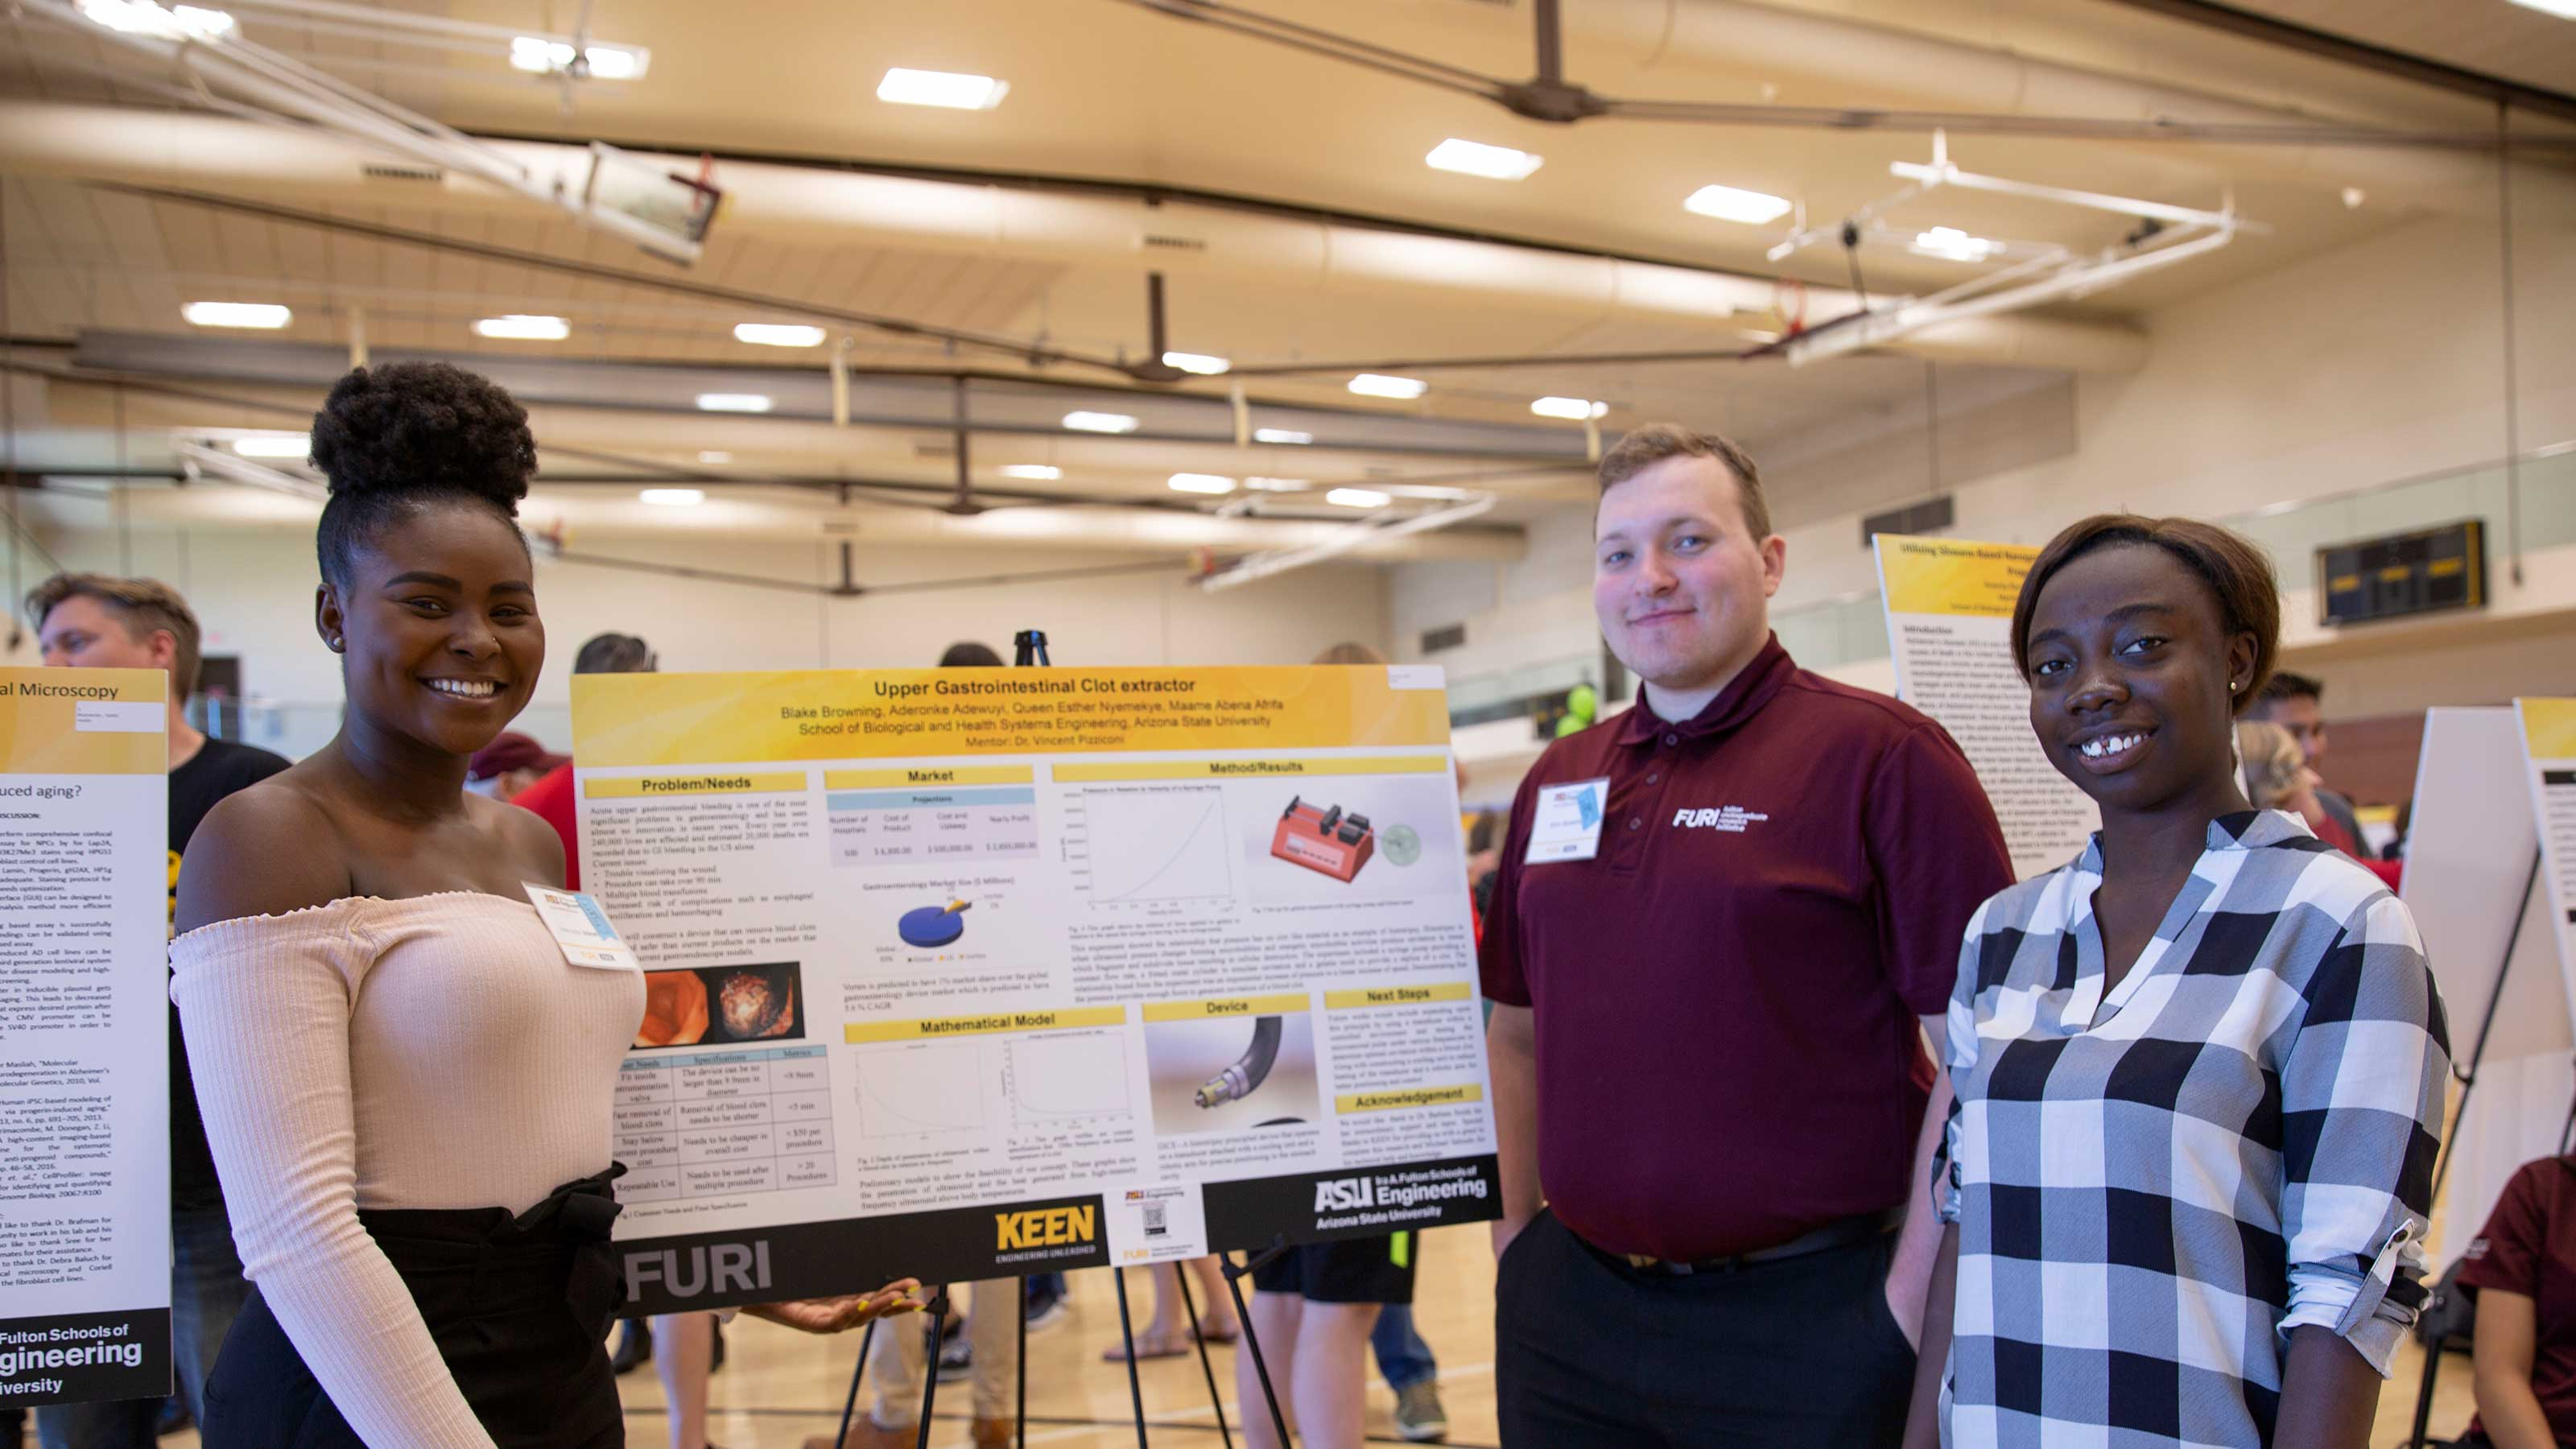 Aerial view of an ASU gymnasium during the FURI symposium and MORE graduate research event, showing hundreds of students by their posters talking about their research.